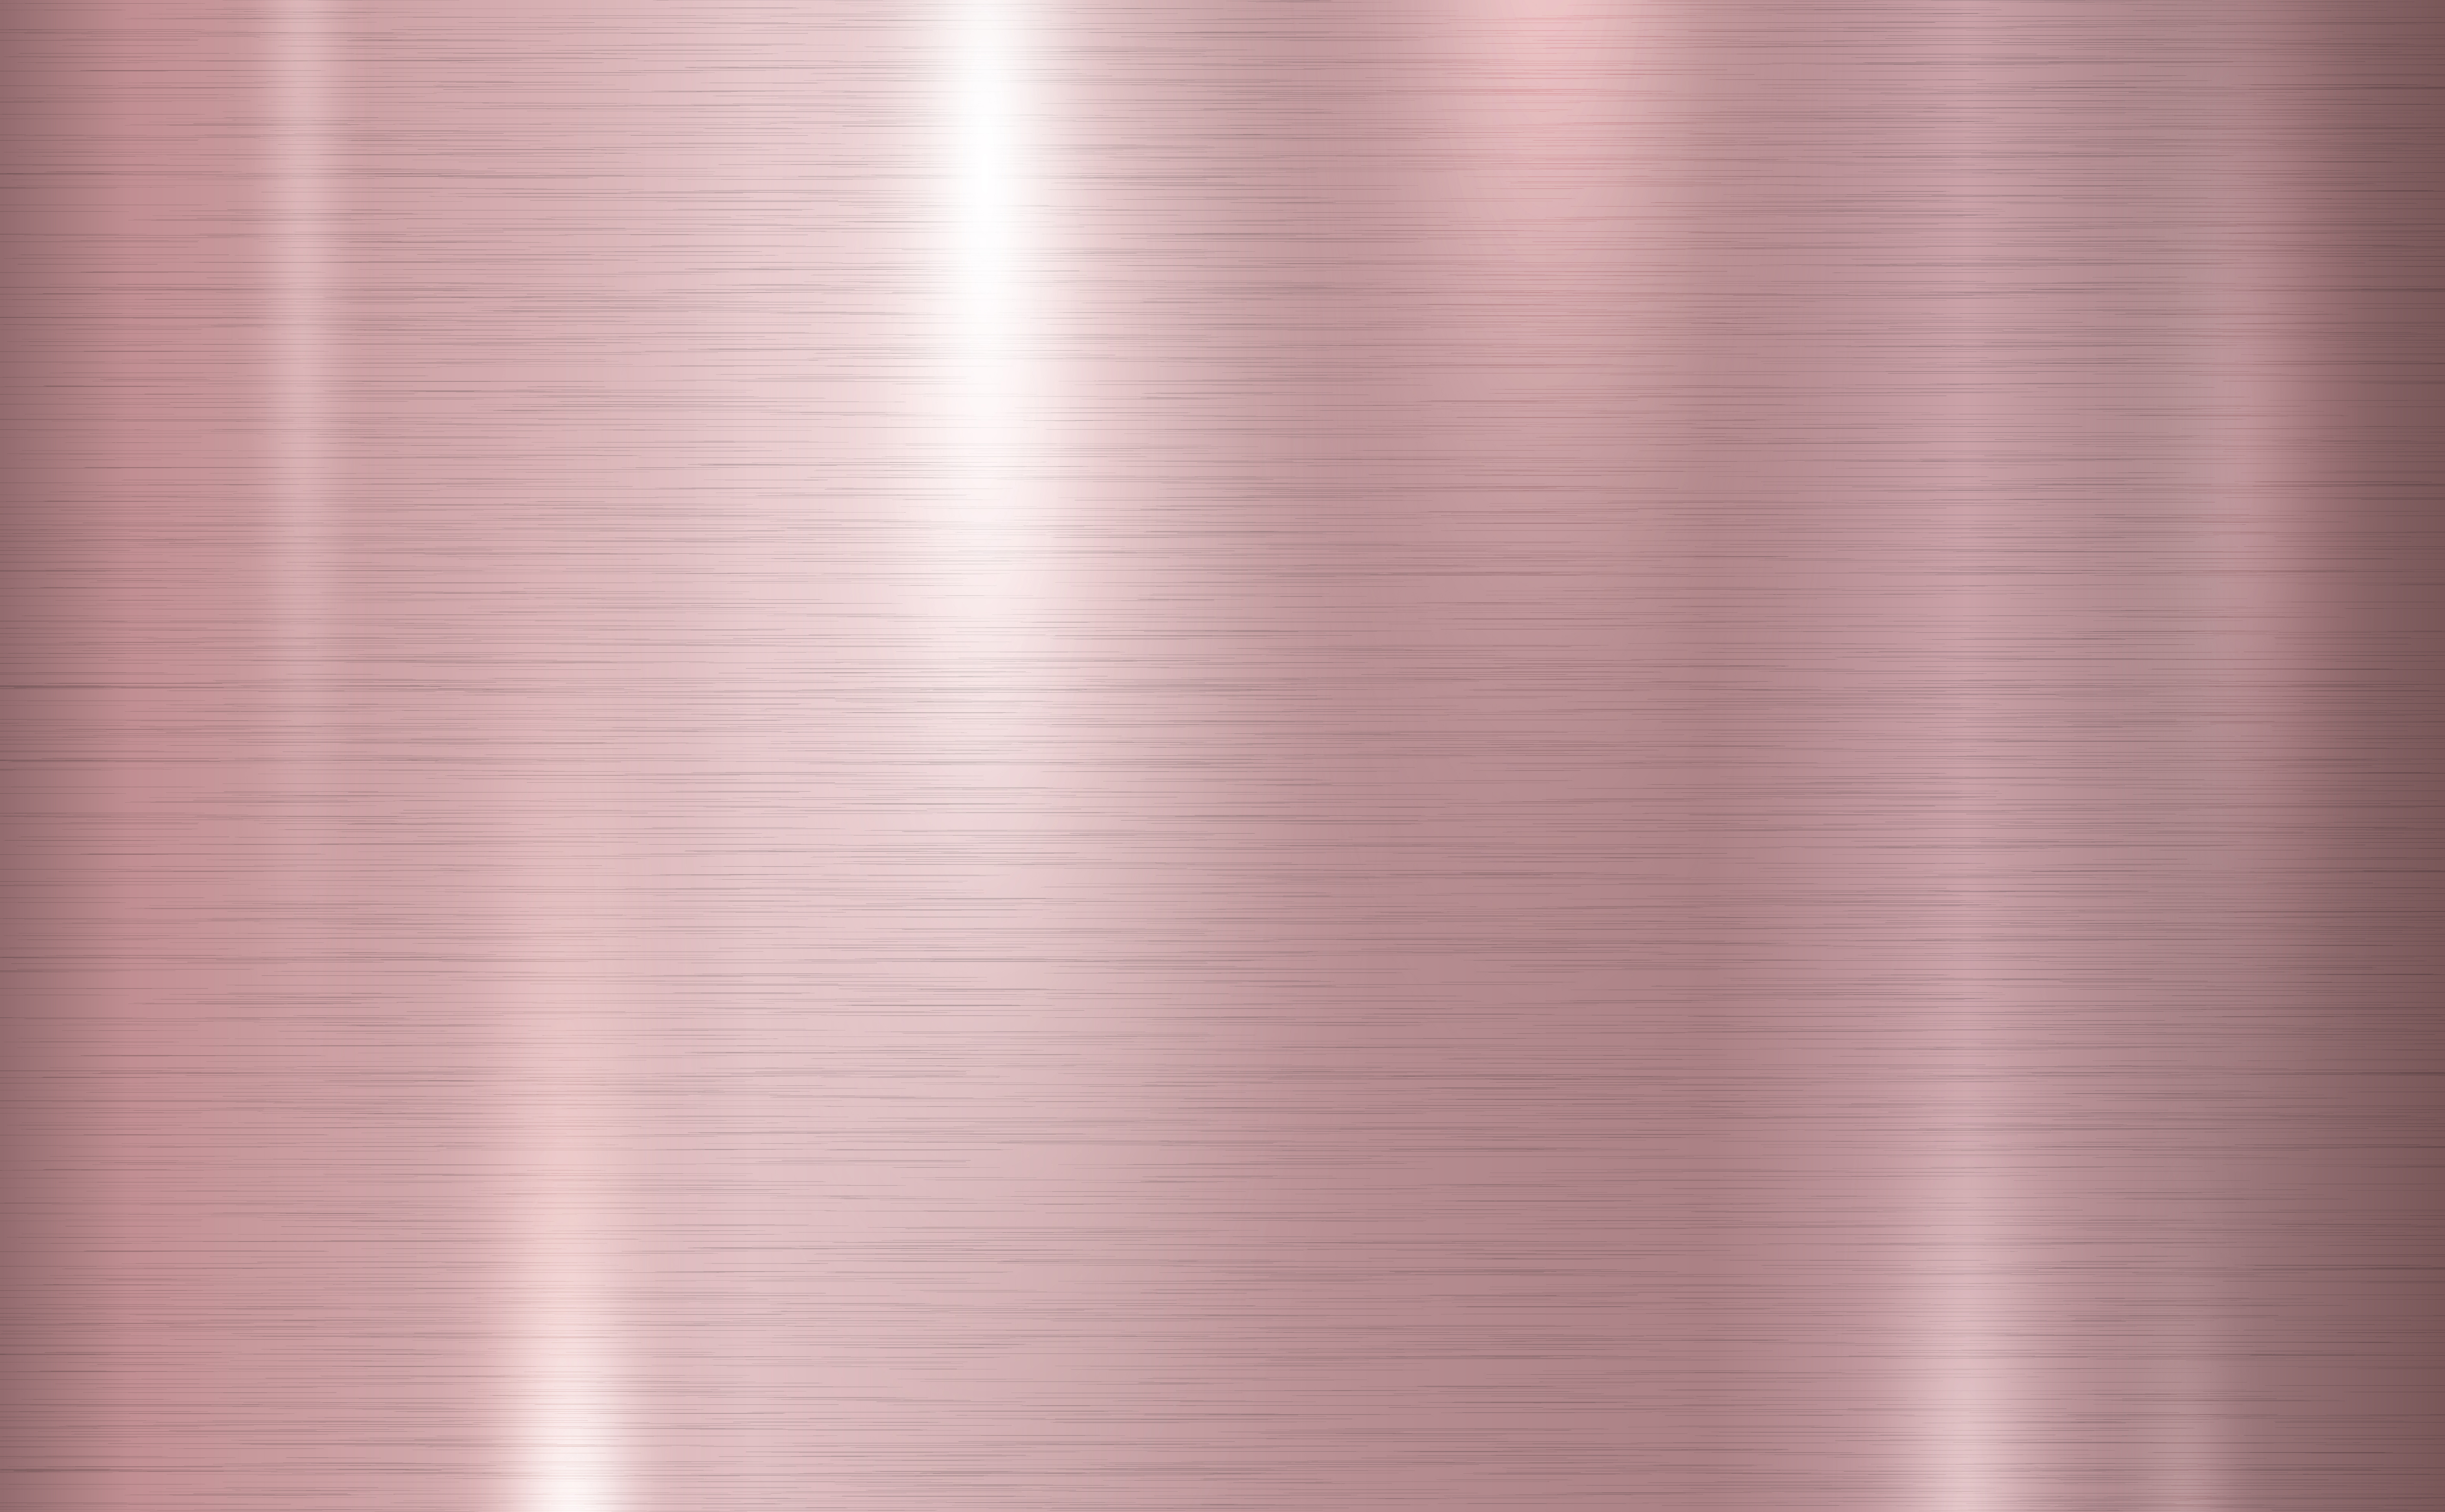 Pink copper metal texture - Download Free Vectors, Clipart ...